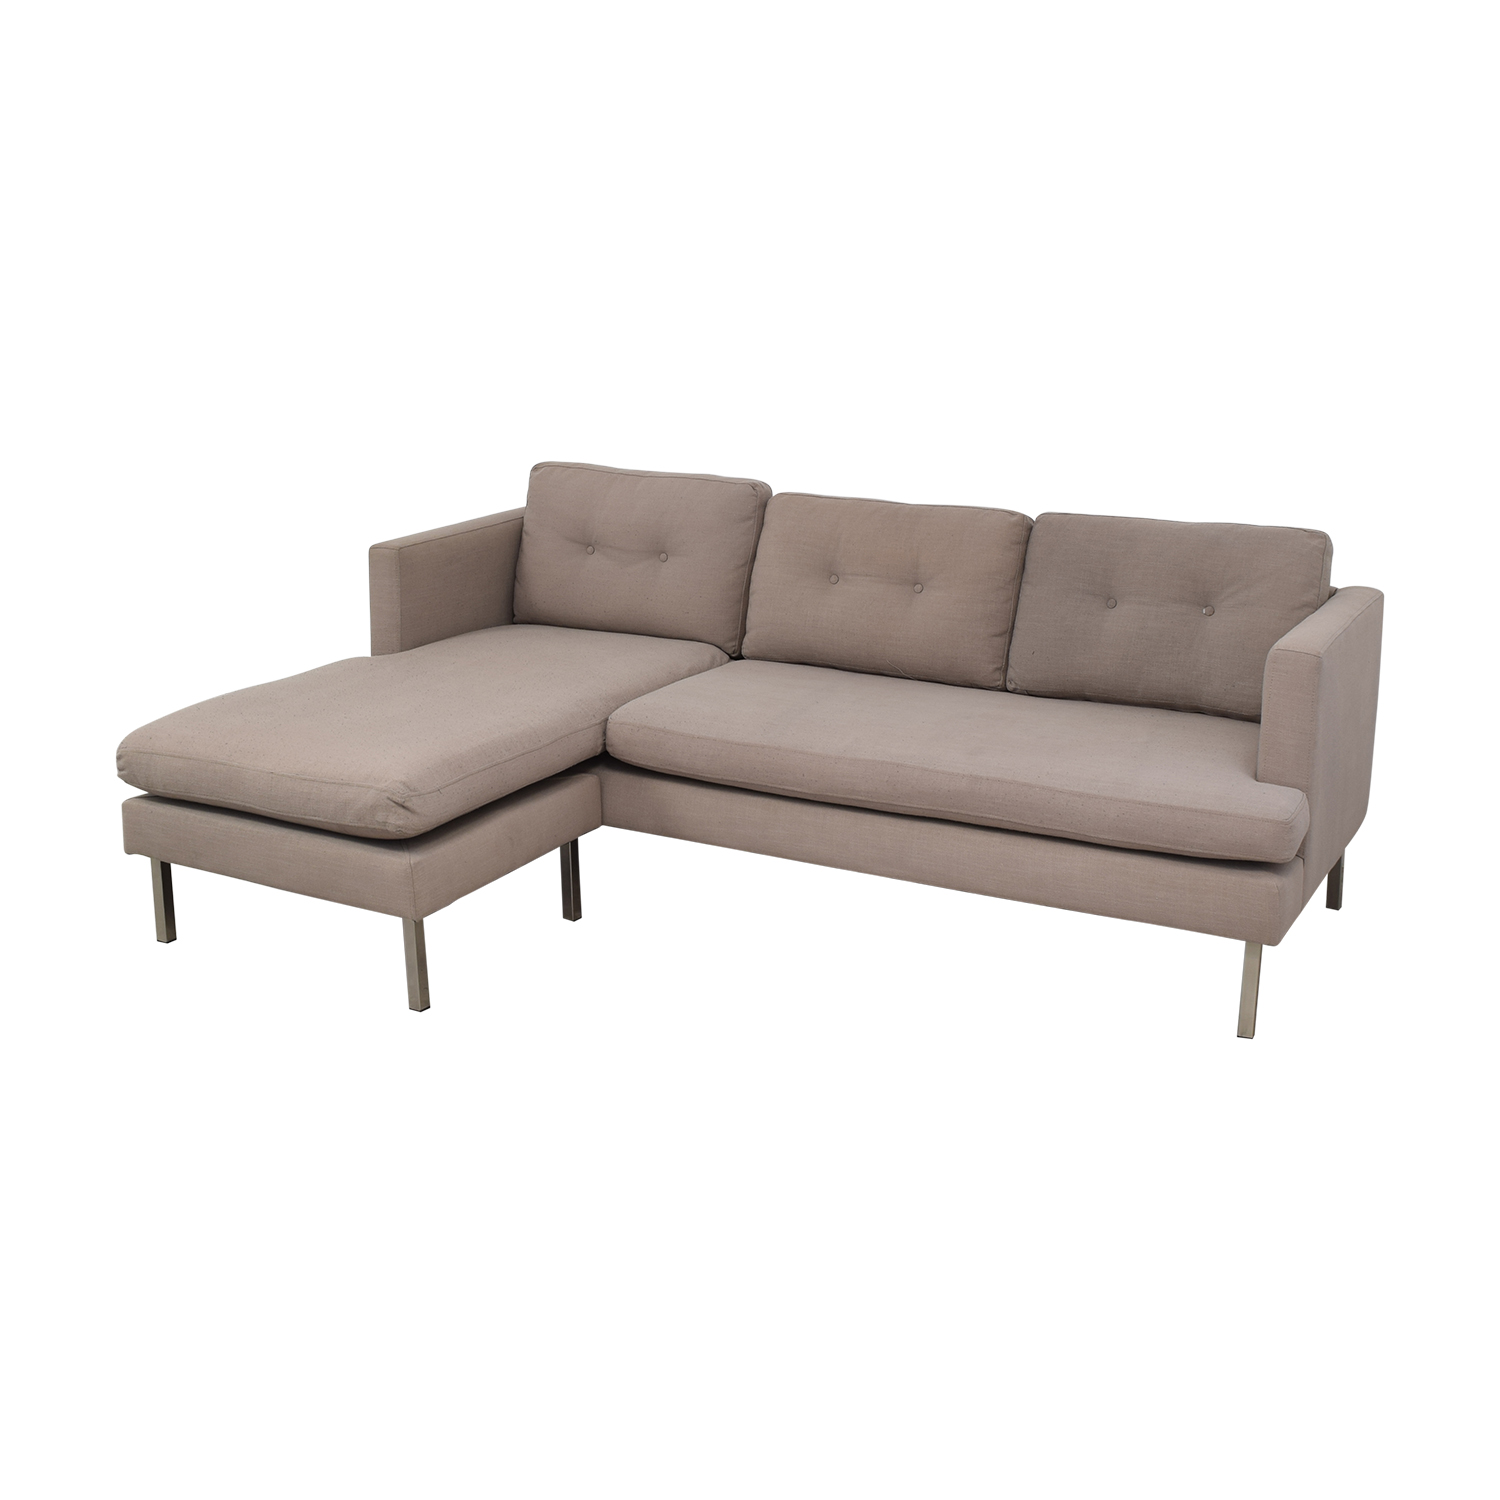 73 off west elm west elm marco two piece sectional sofa in chenille tweed sofas